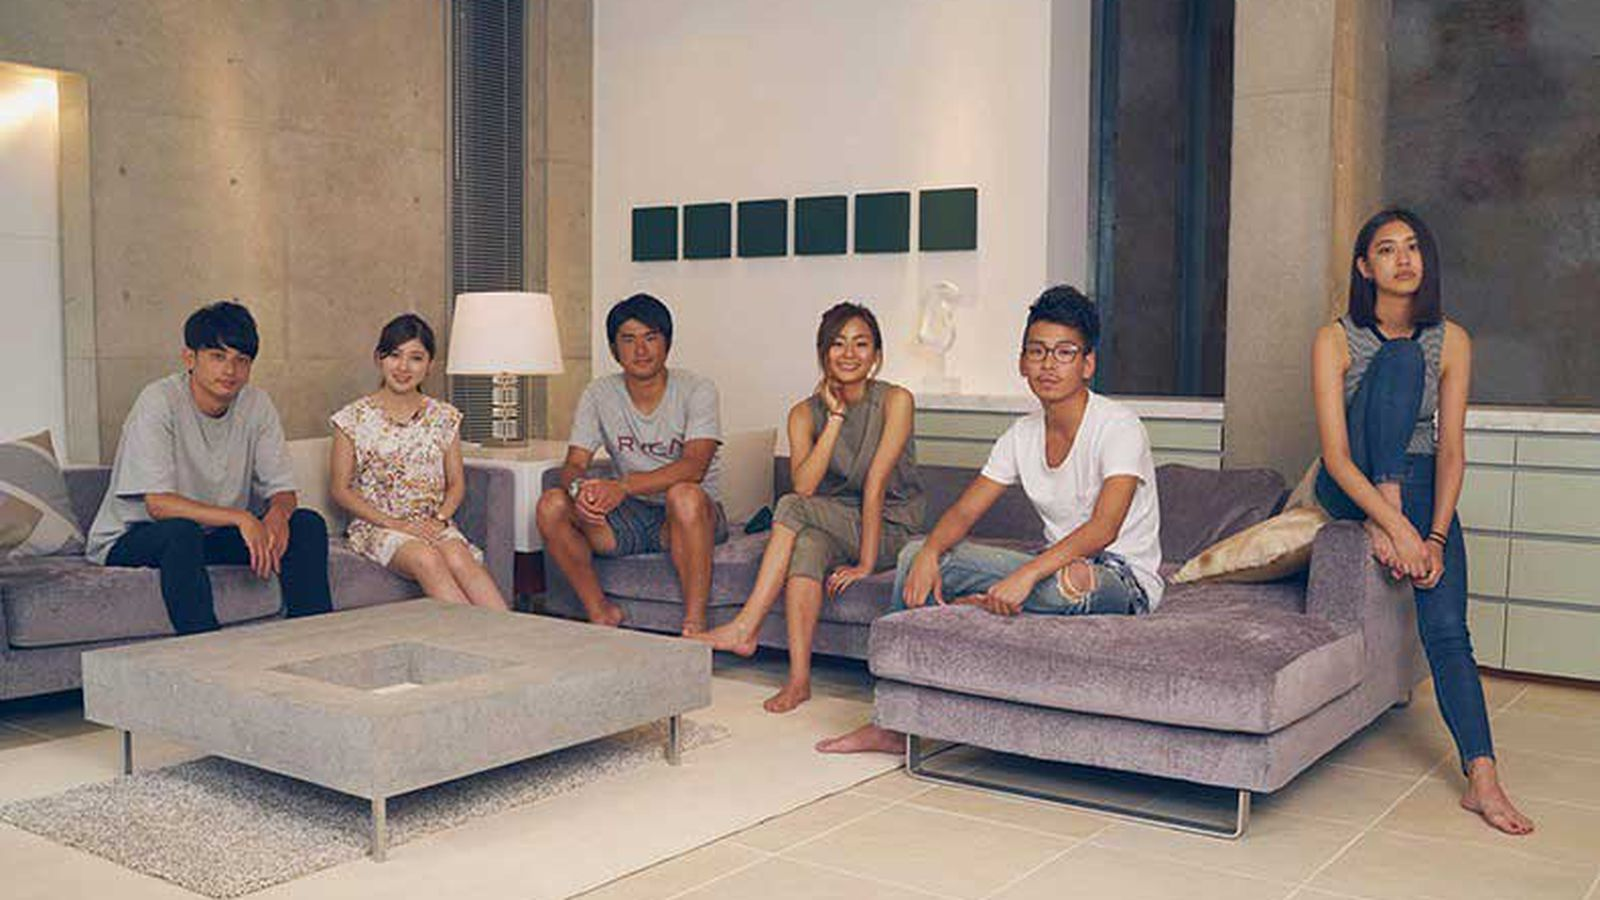 netflix 39 s terrace house finds meaning in mundane human